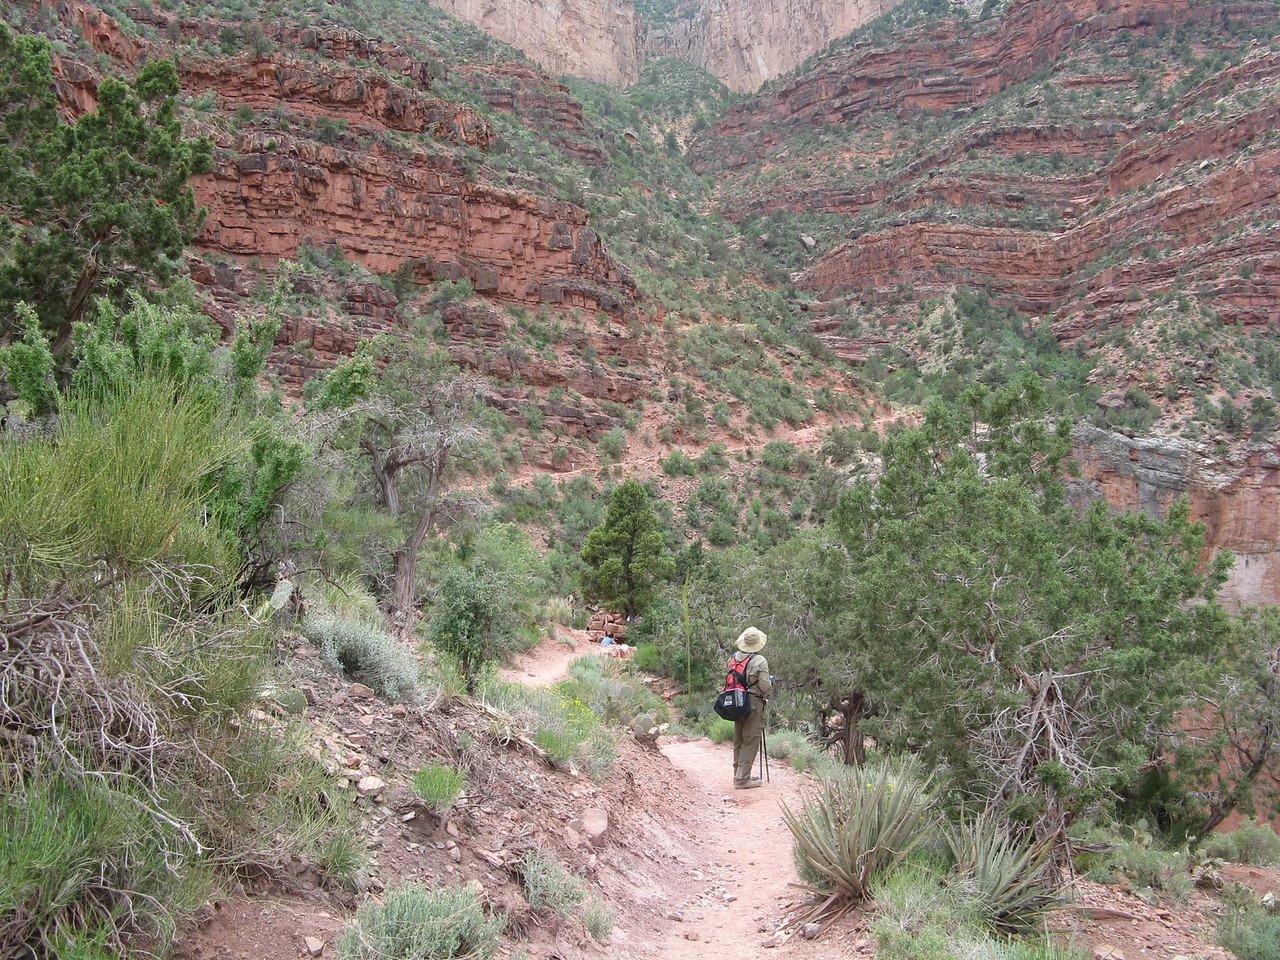 The environment changes again as we head into the Supai Group of rock layers.  Now junipers and pinion trees occur along the trail.